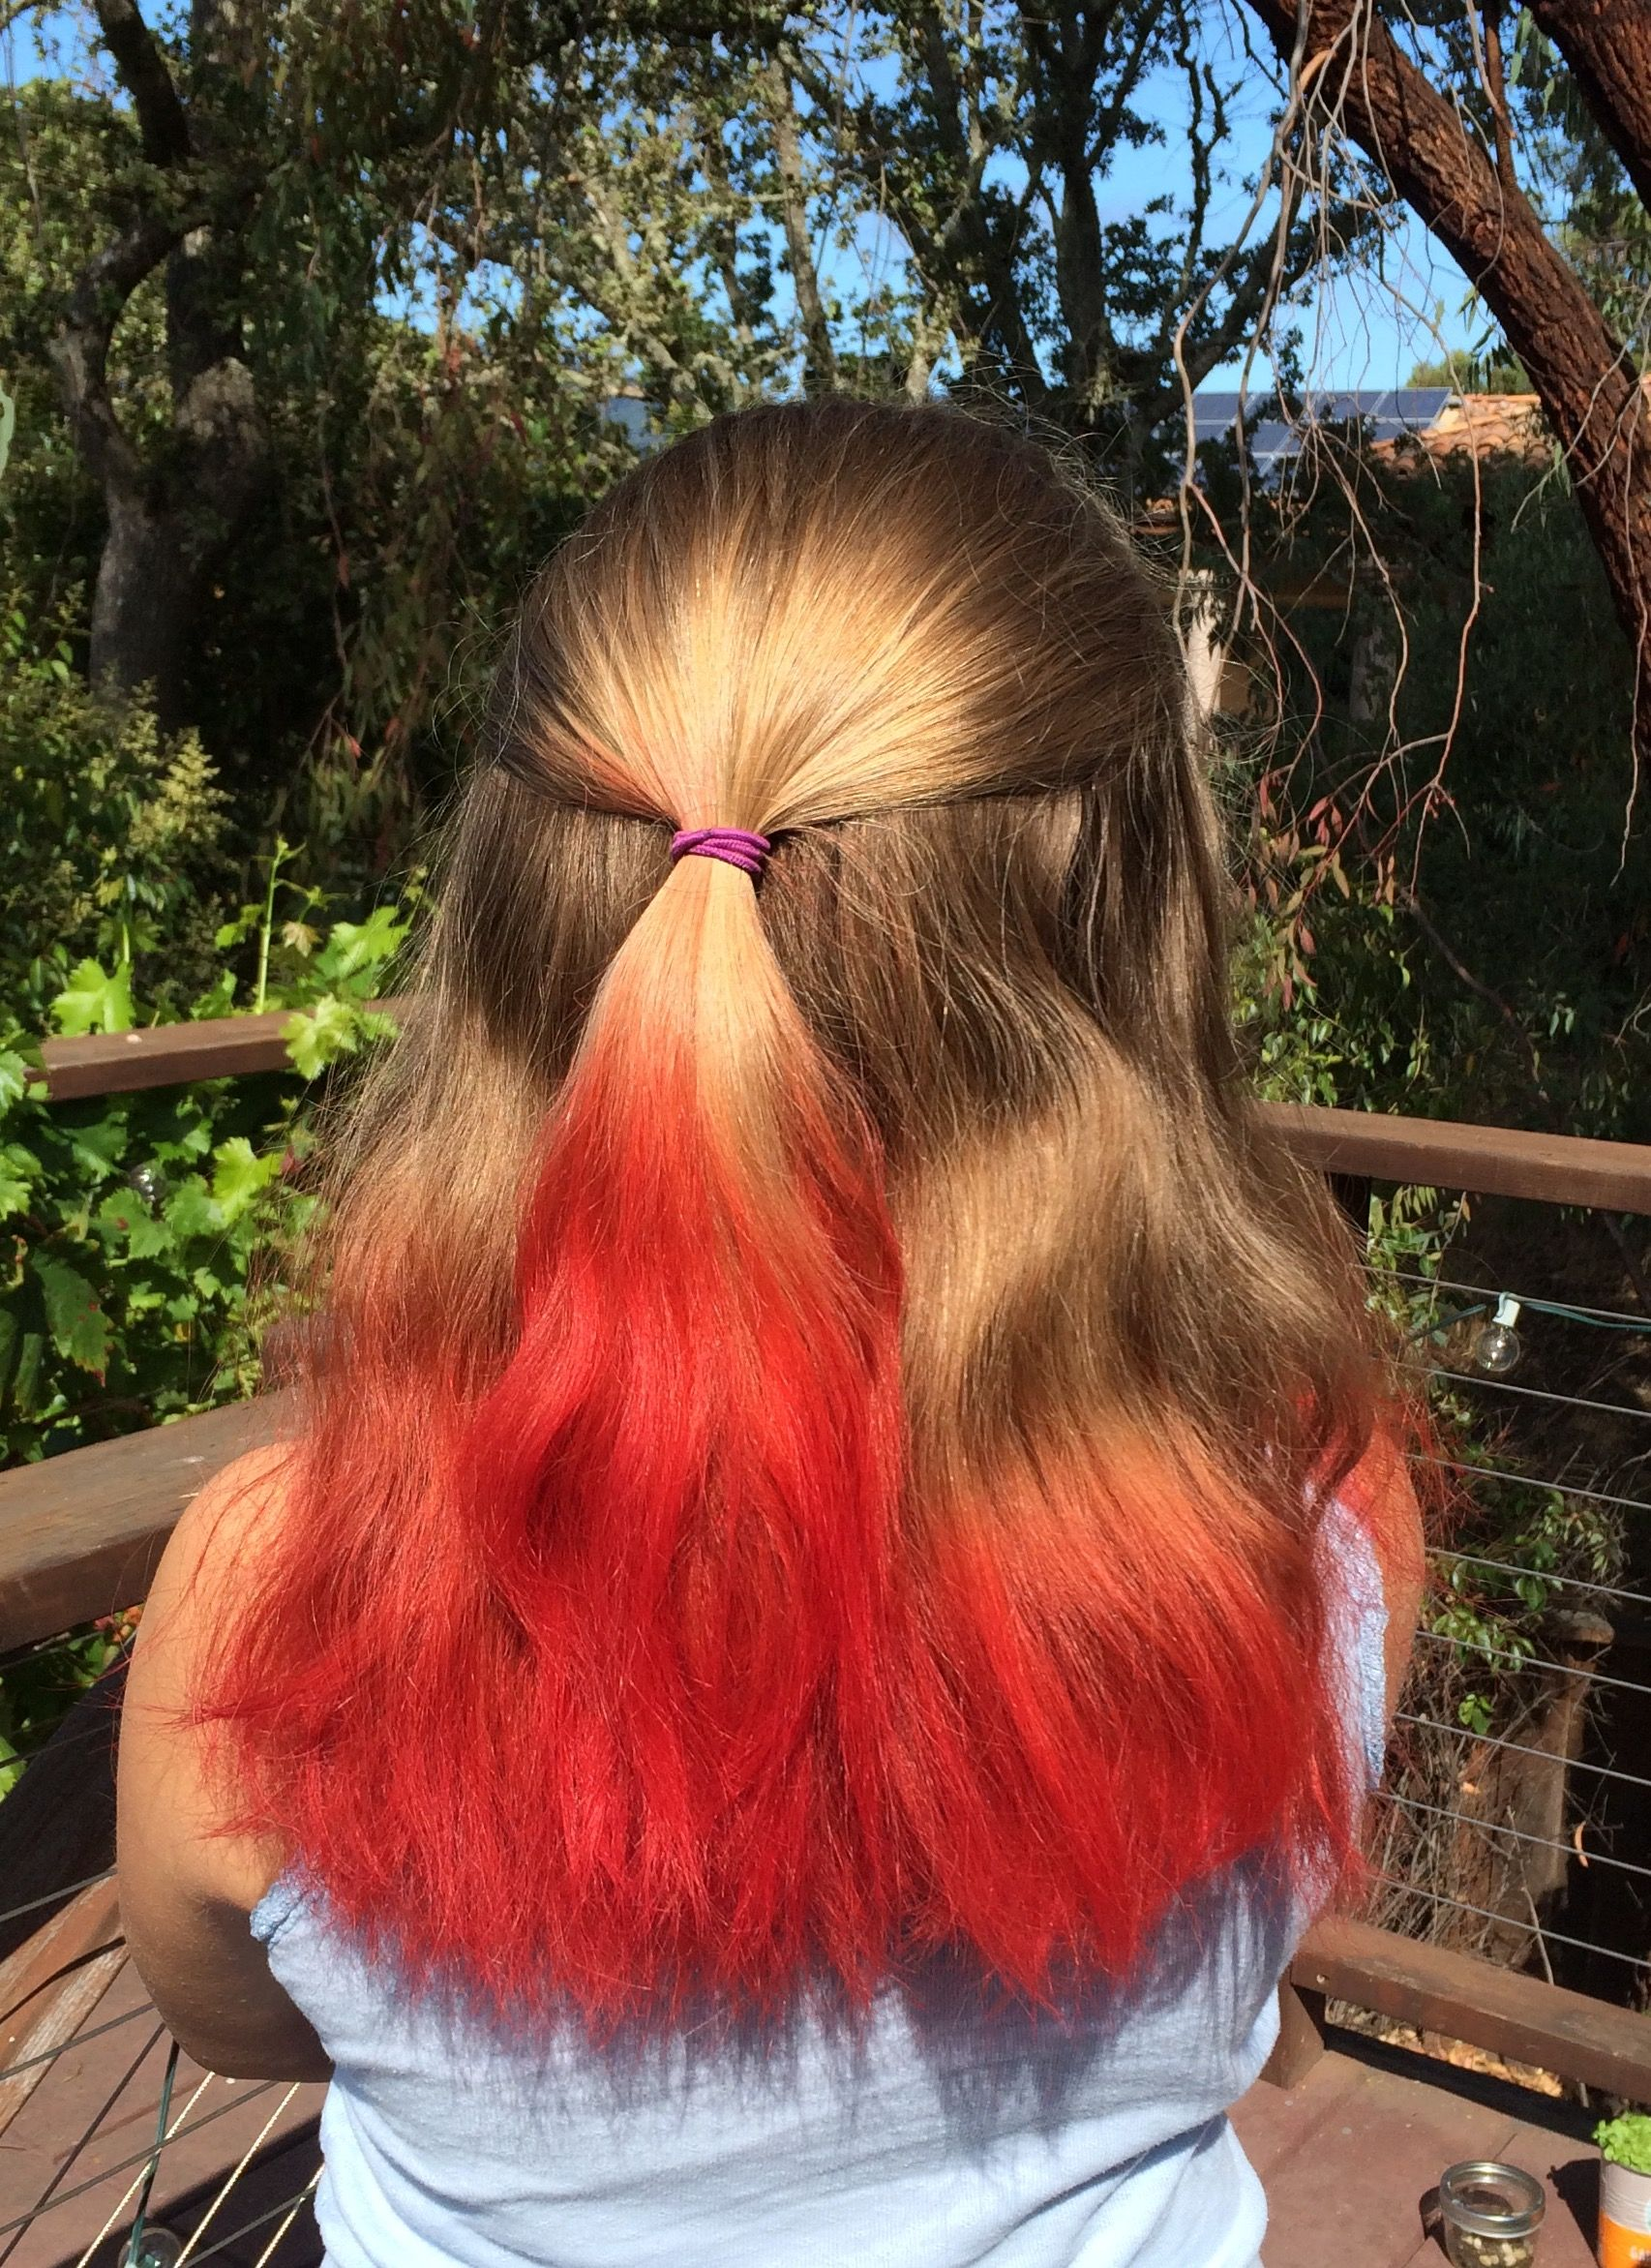 Kool Aid Hair Dye 2 Cups Boiling Water 2 I Used 3 Packets Of Kool Aid Of Your Choice Mix Thou Kool Aid Hair Dye Kool Aid Hair Hairstyles For Thin Hair